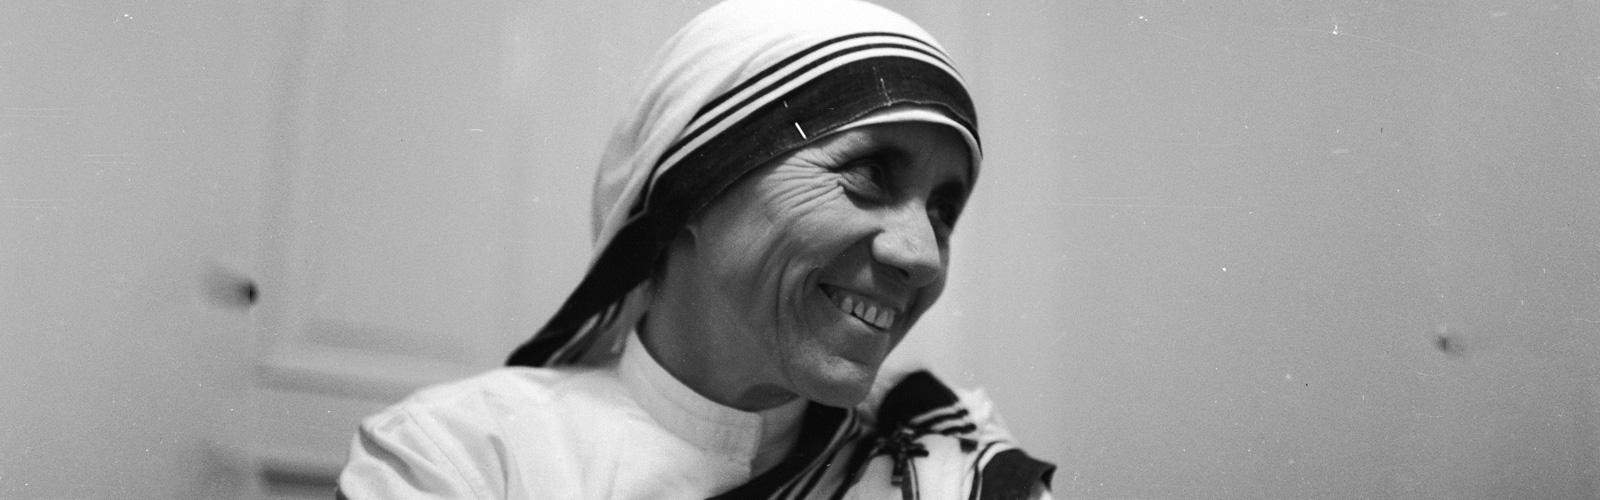 mother teresa s sainthood is a fraud just like she was